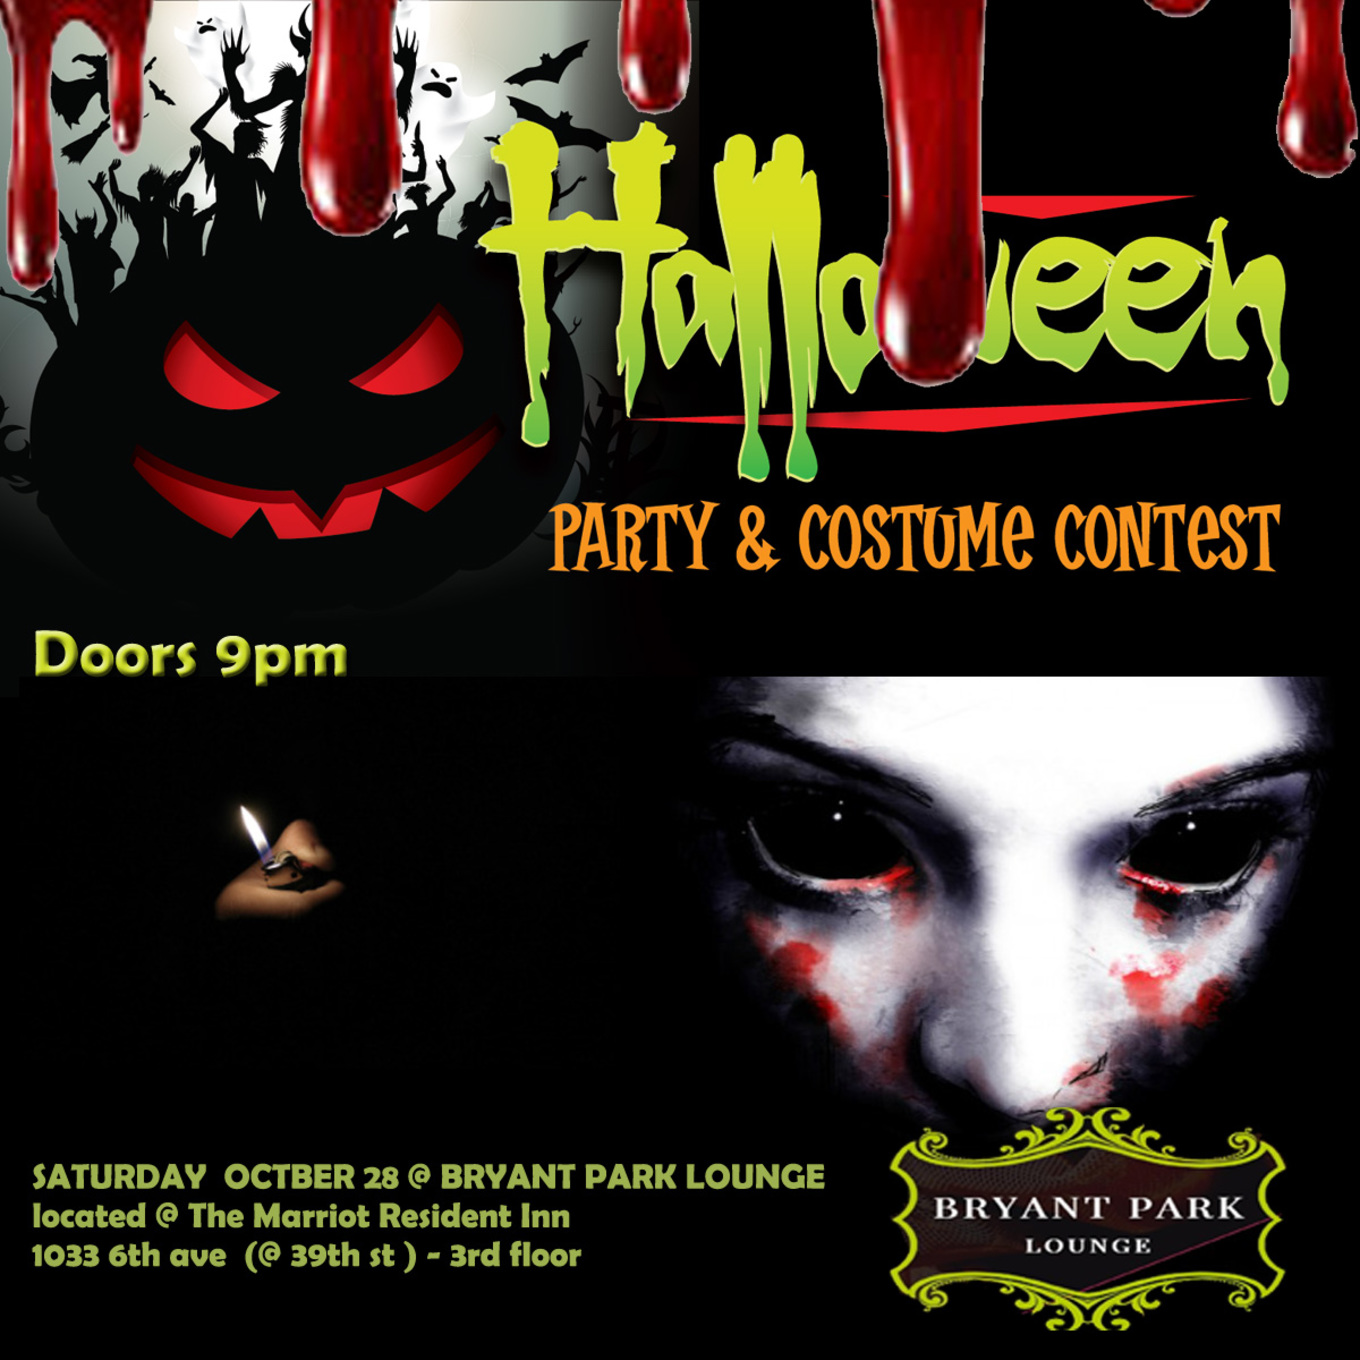 Halloween Party At Bryant Park Lounge - Tickets - Bryant